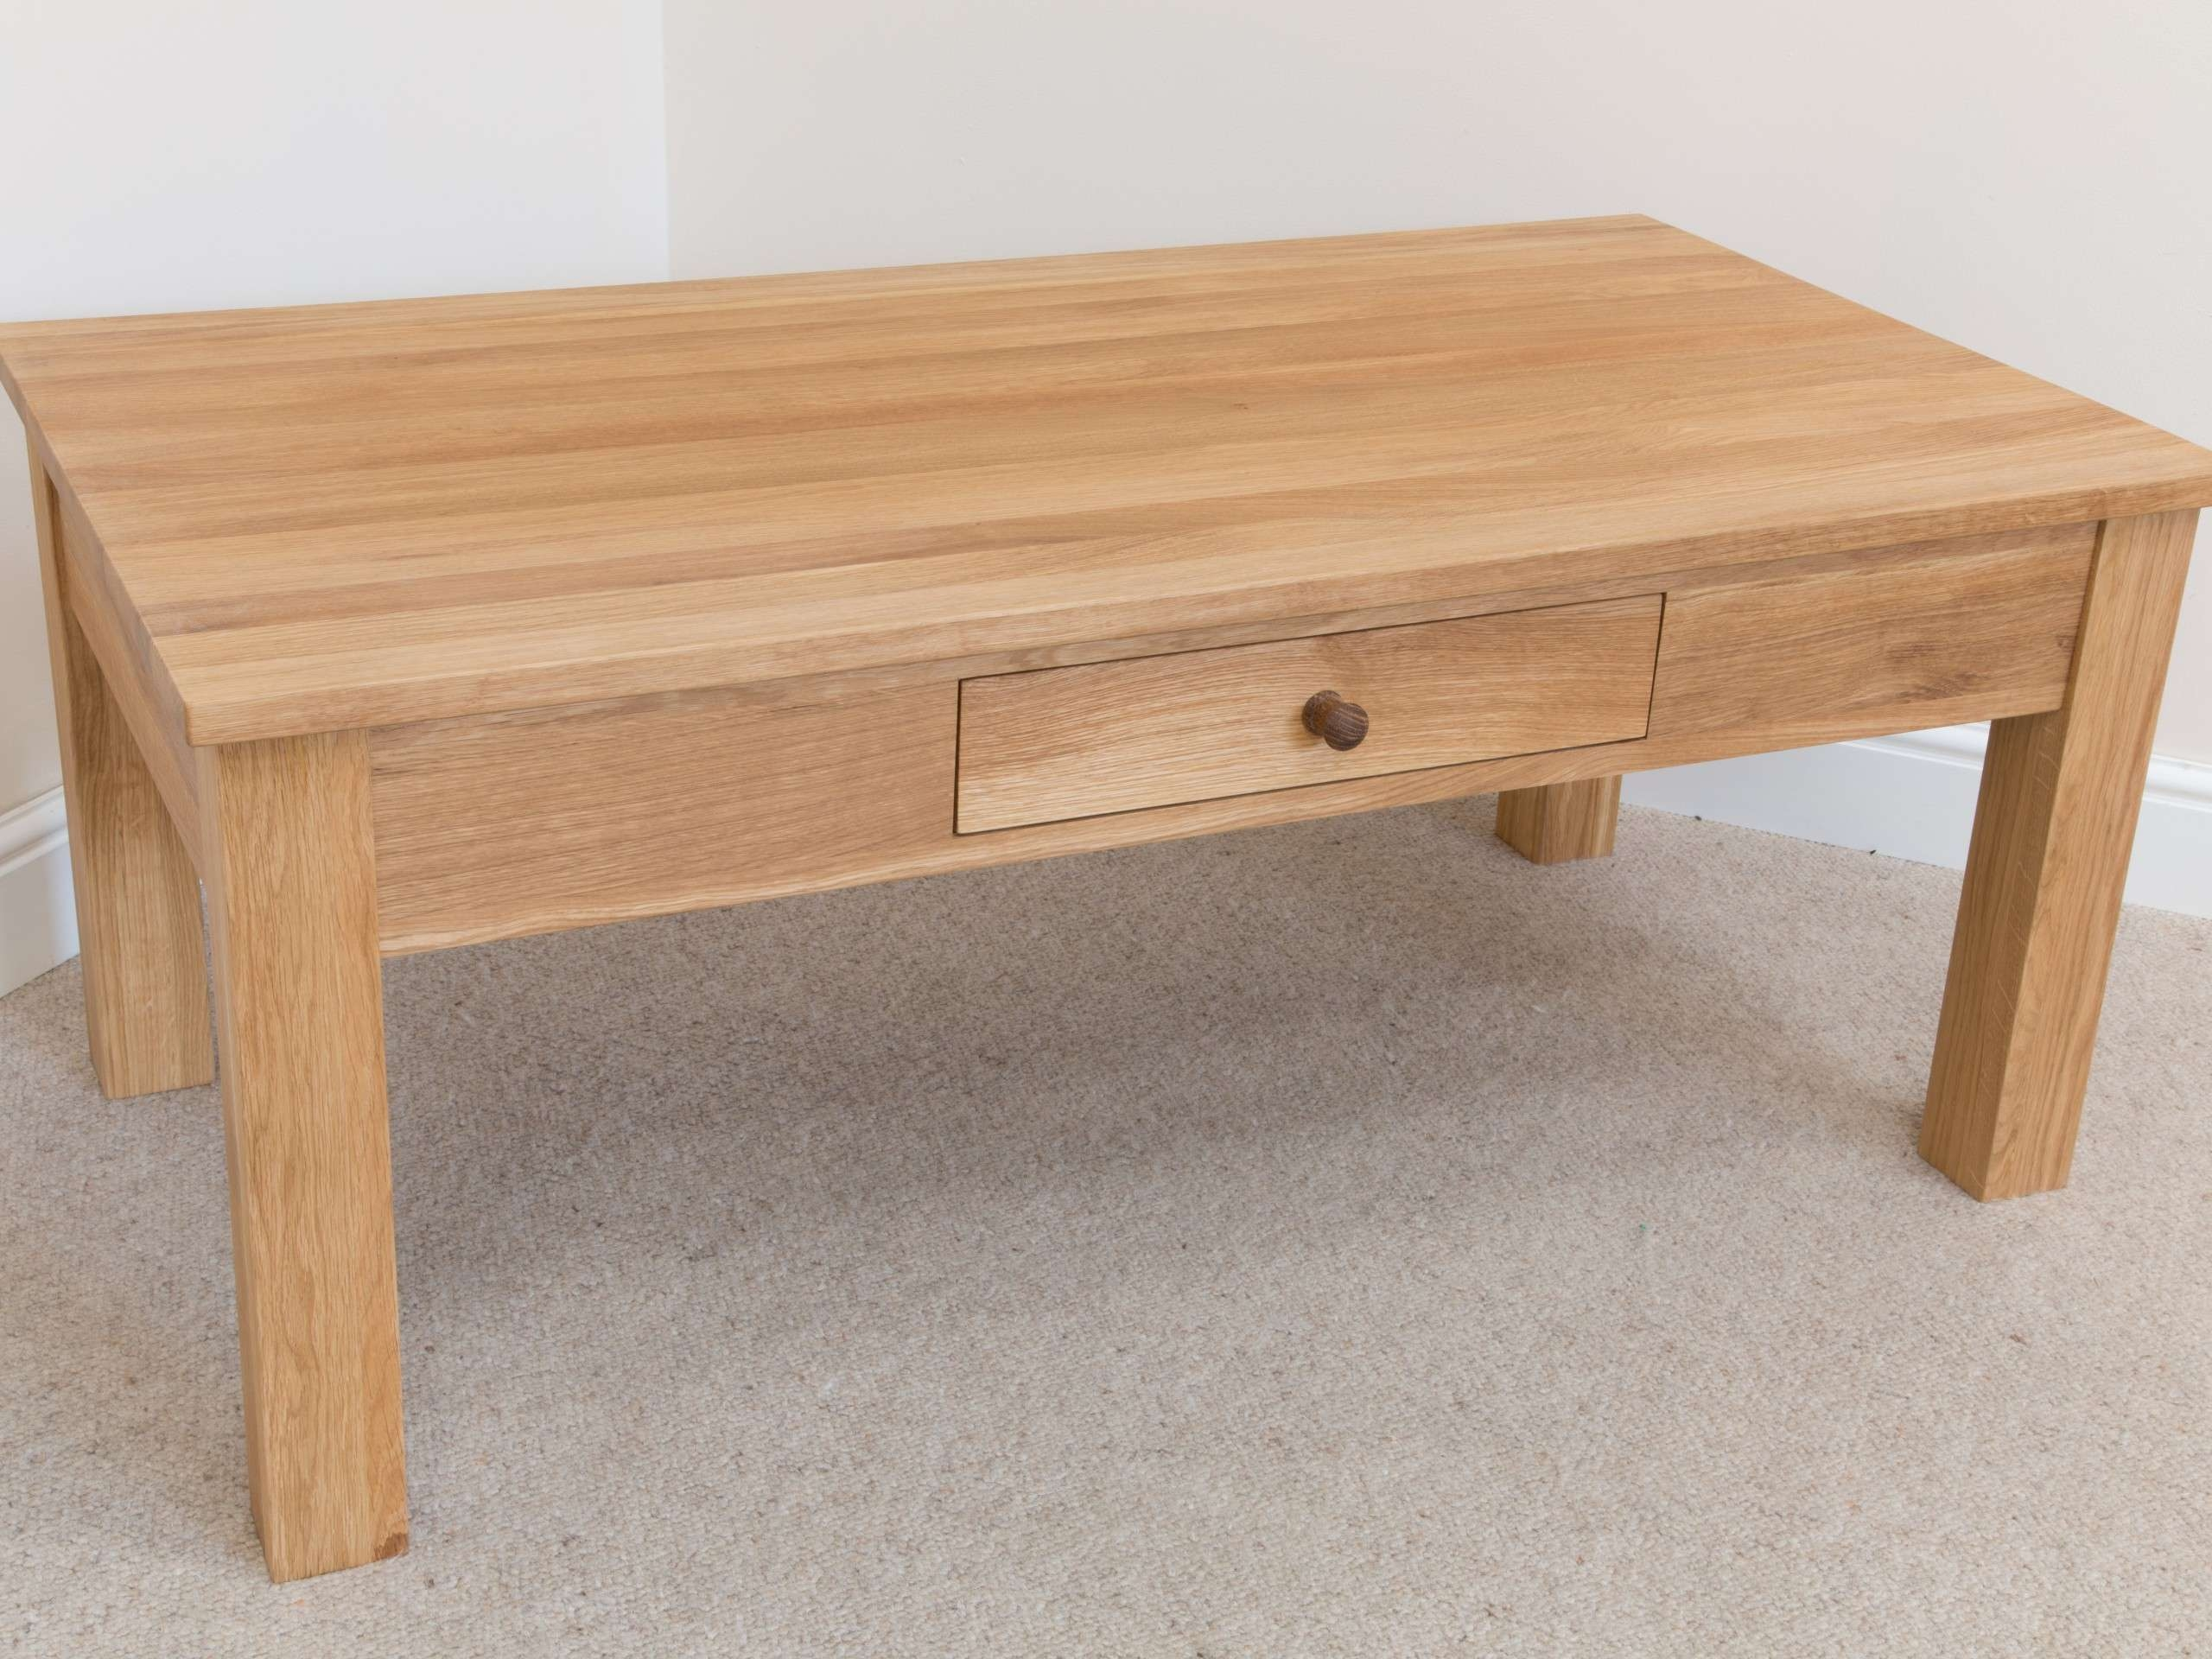 Divine Solid Oak Coffee Table With Drawers New At Drawer For Fashionable Solid Oak Coffee Table With Storage (View 14 of 20)